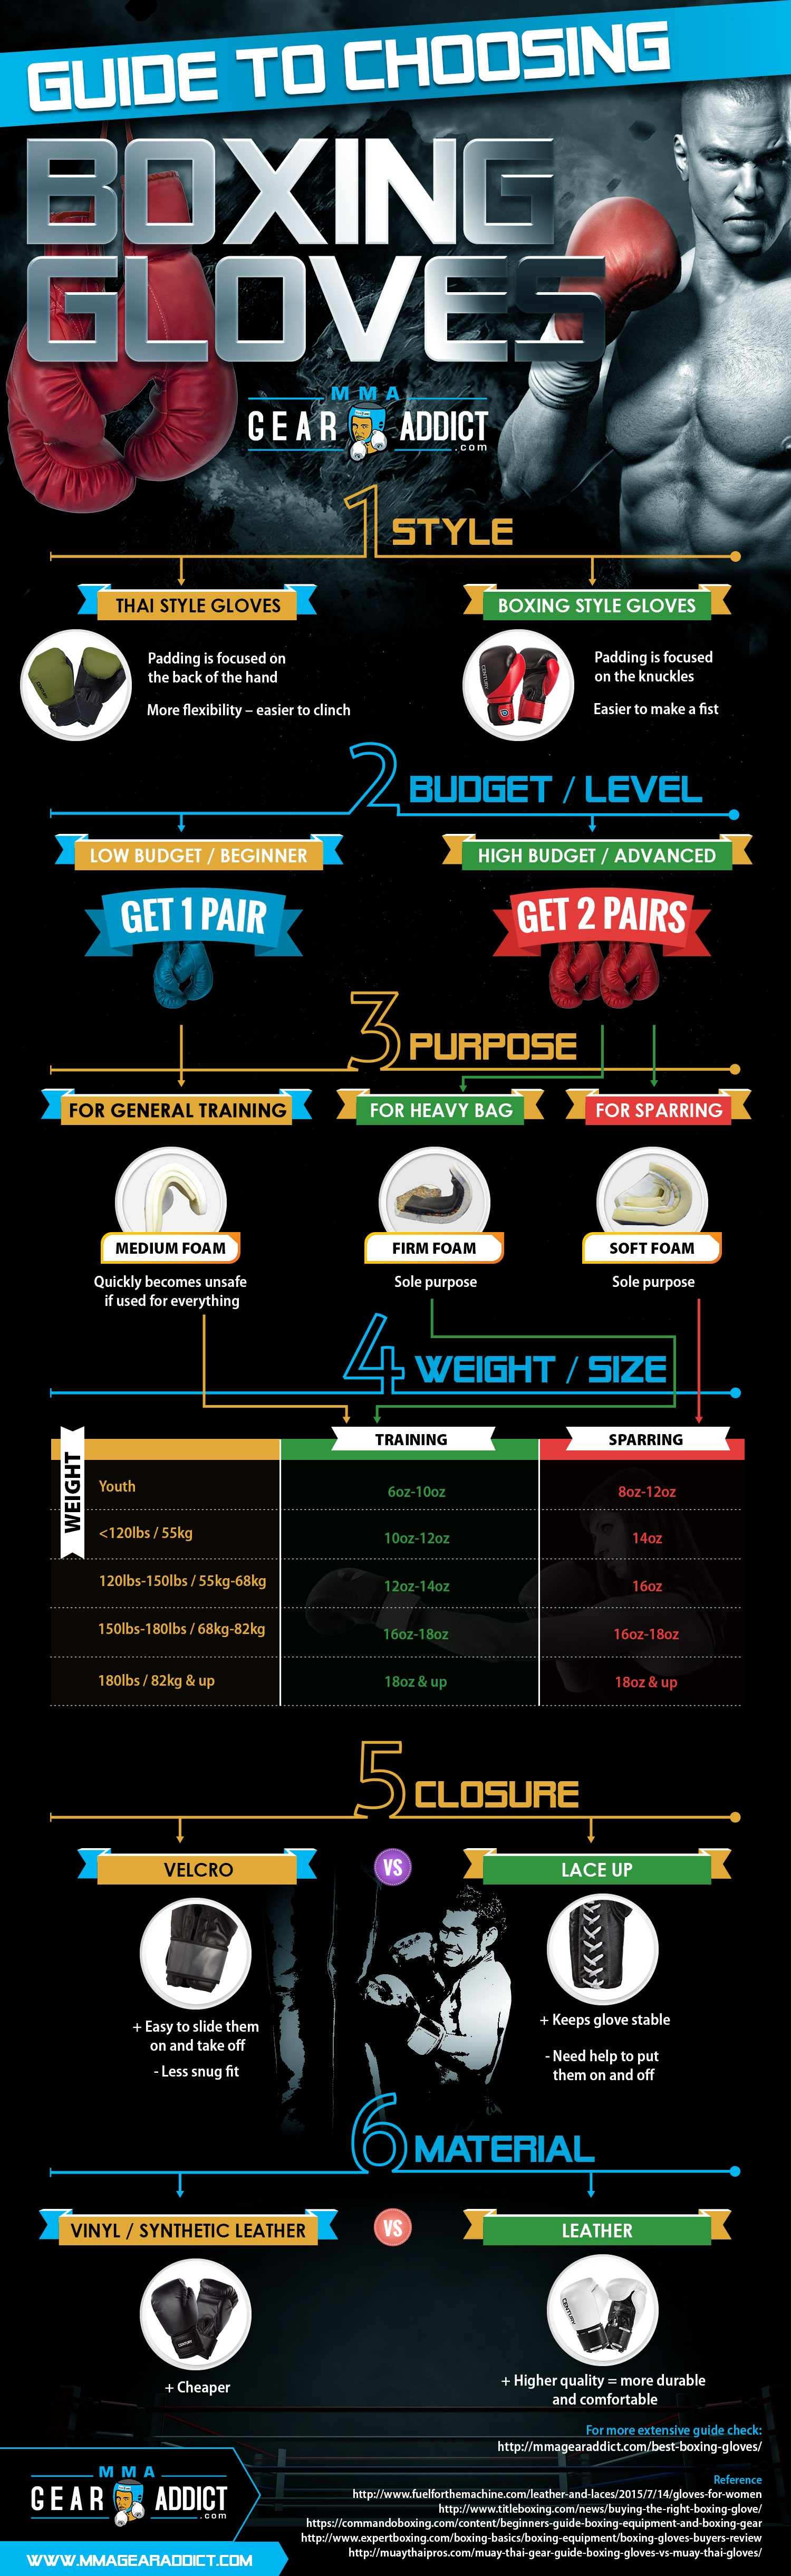 This chart compares different materials and styles of boxing gloves.